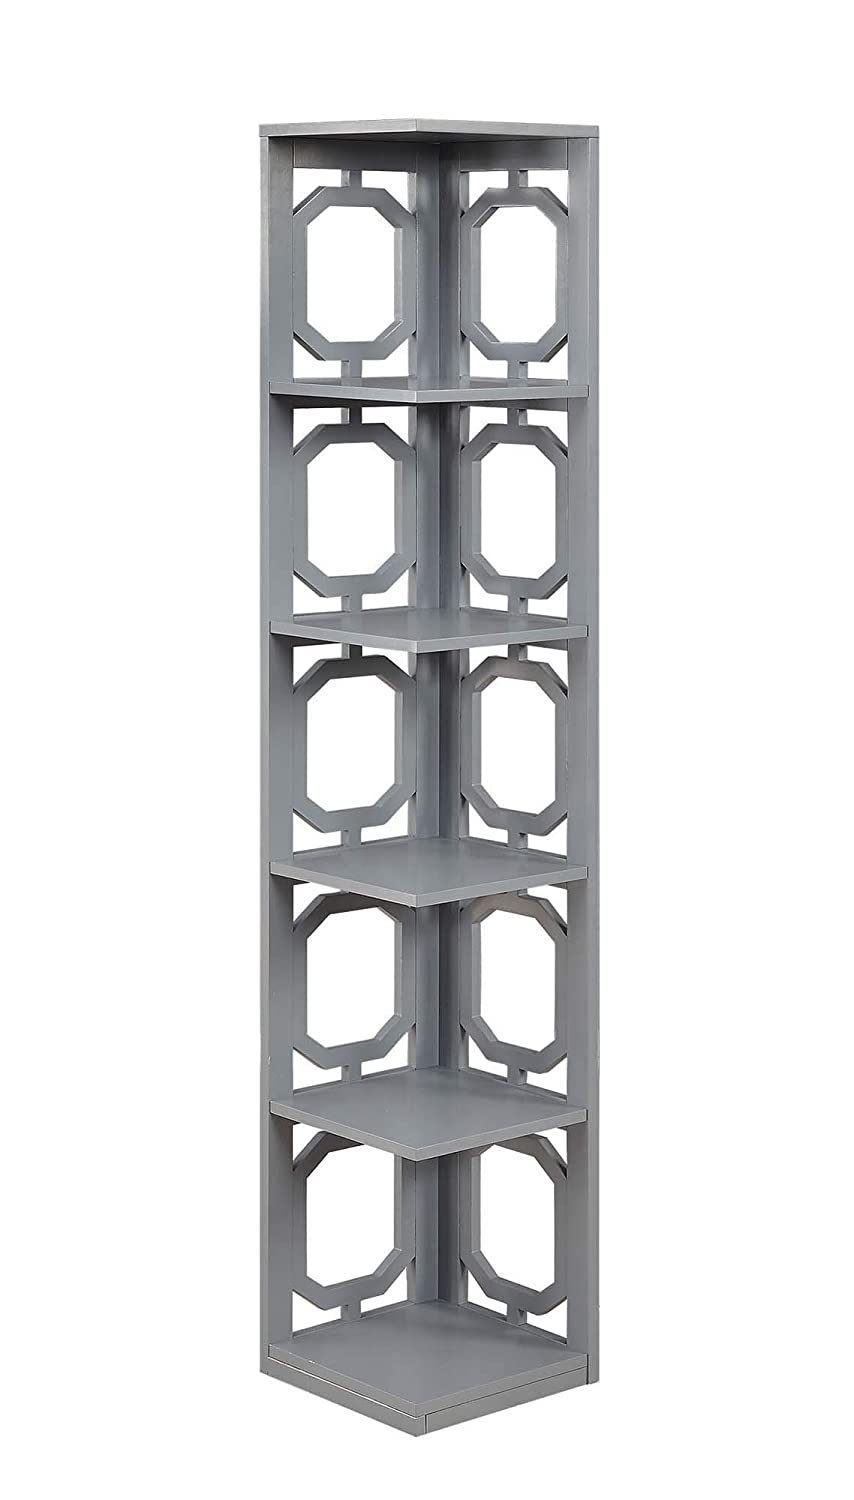 Convenience Concepts 203280GY Omega 5-Tier Corner Bookcase, Gray